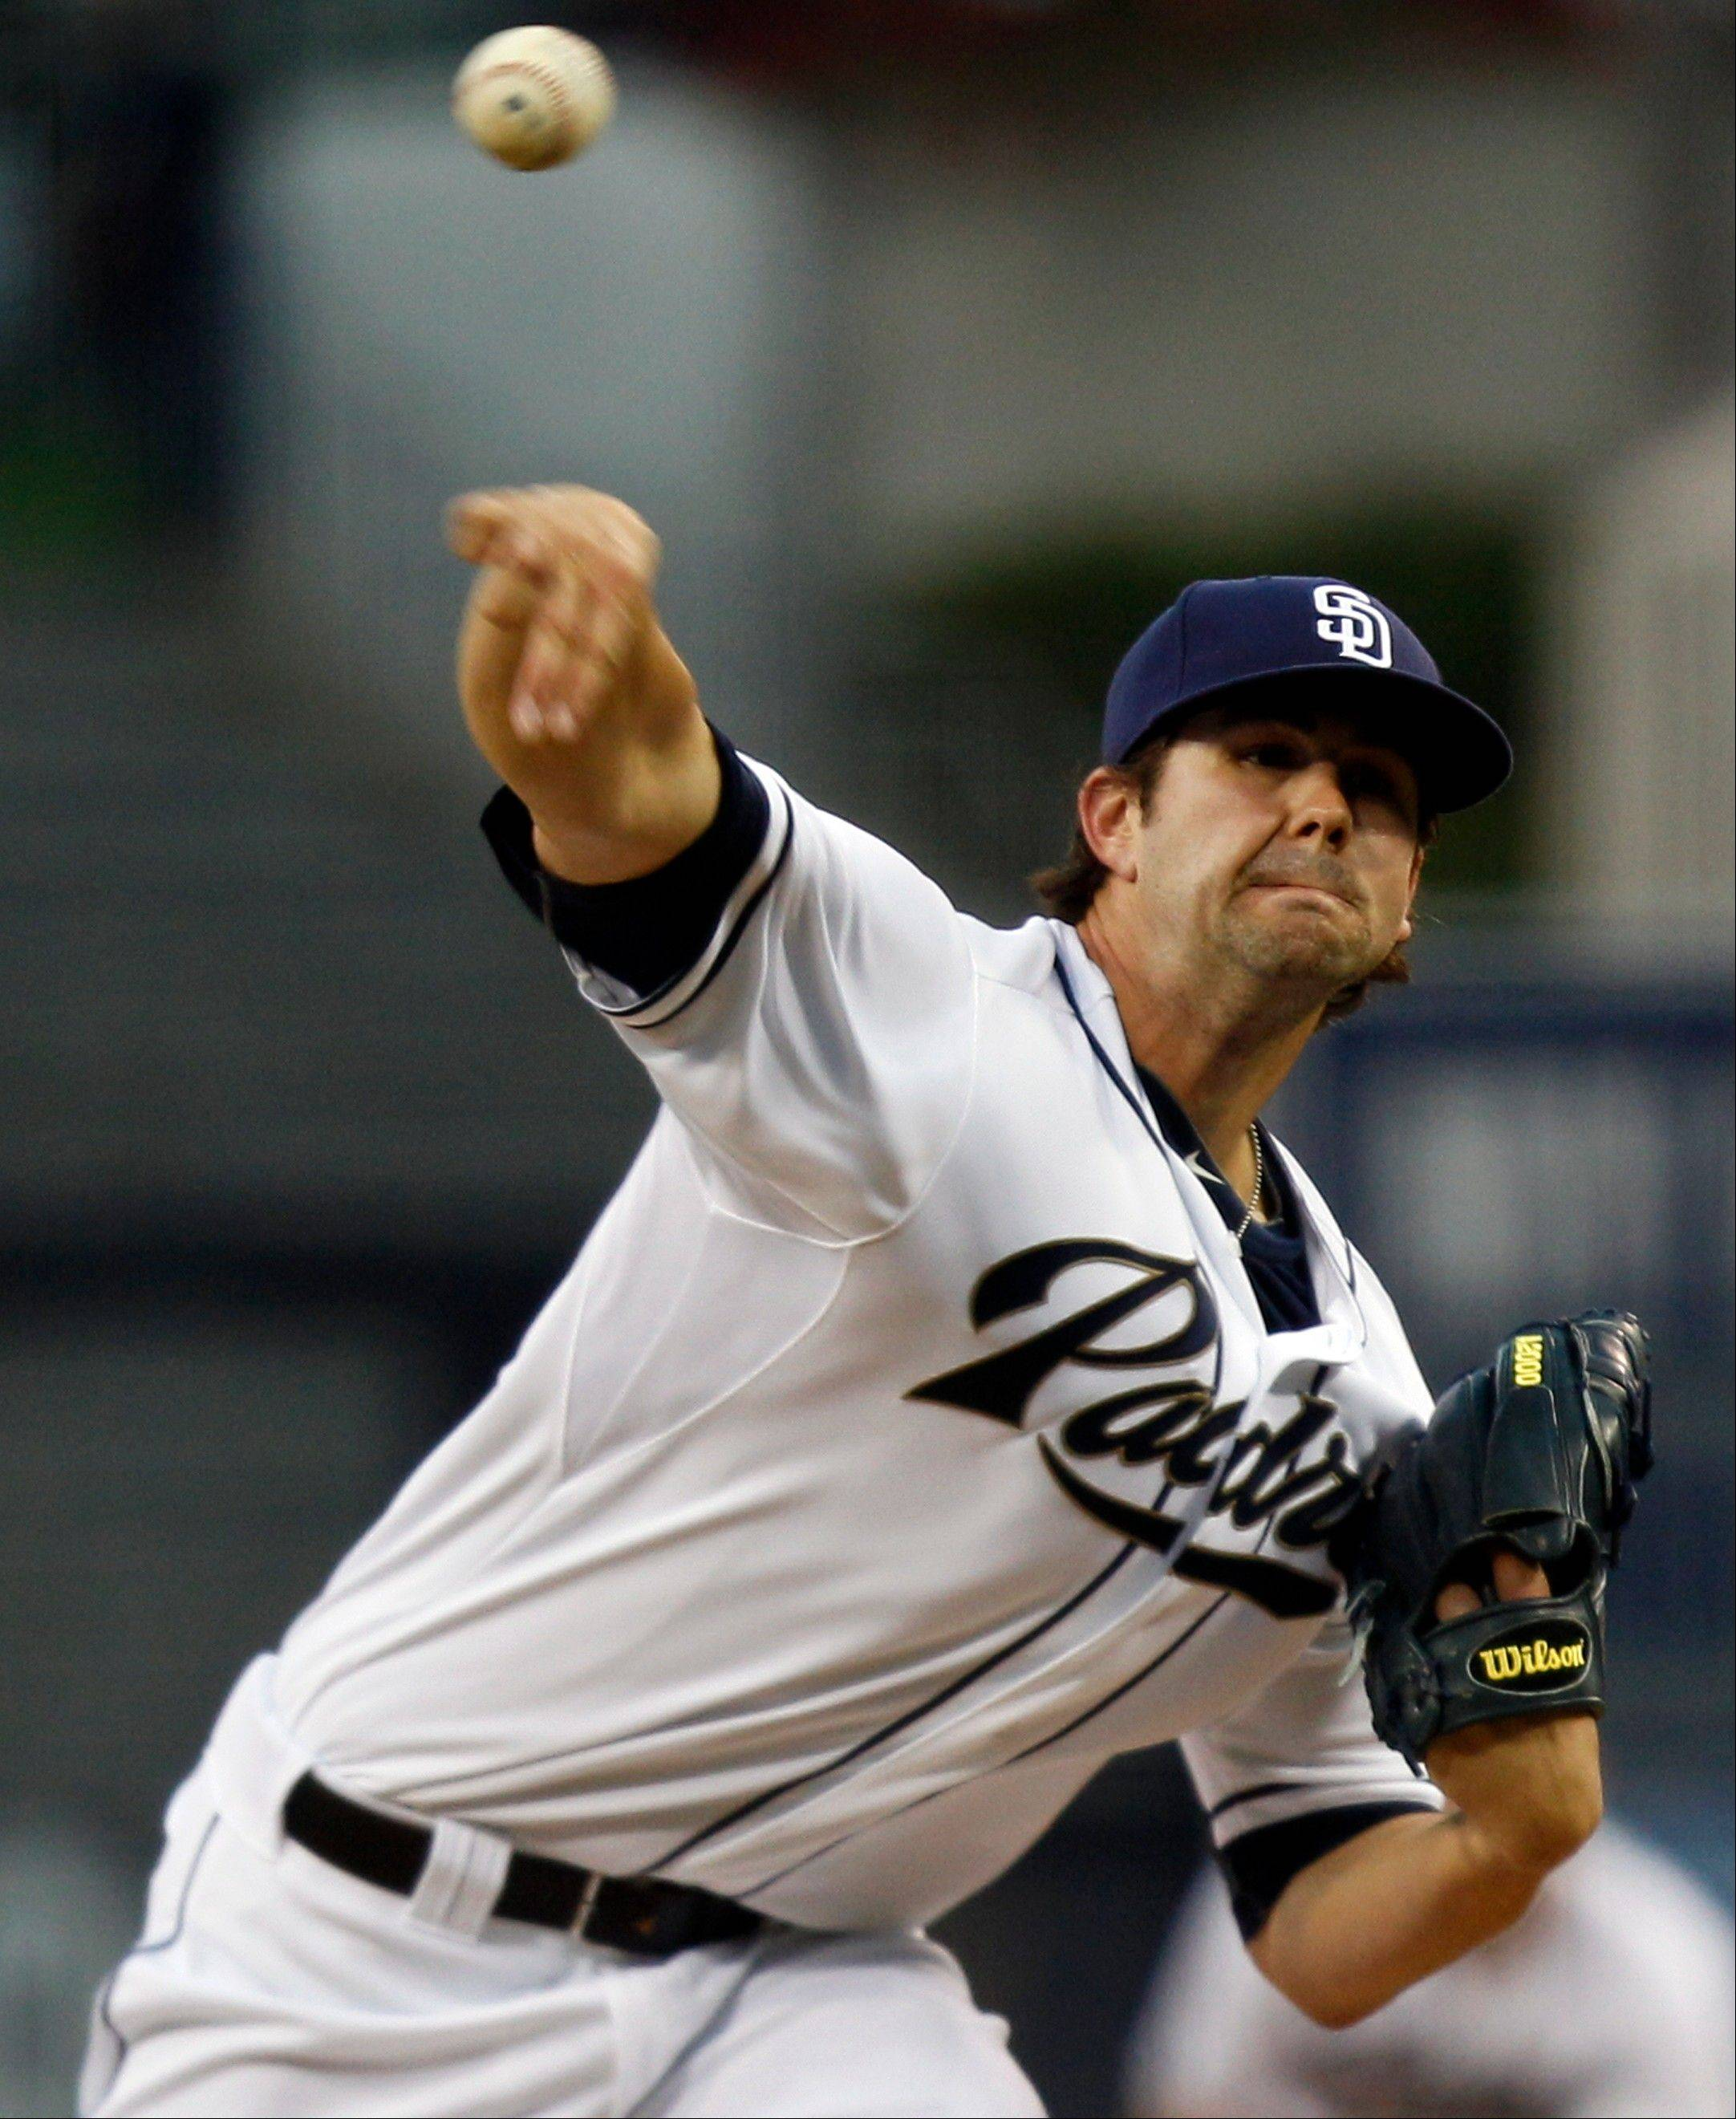 San Diego Padres starter Casey Kelly allowed three hits in six innings, struck out four and walked two Monday night at home against the Atlanta Braves.